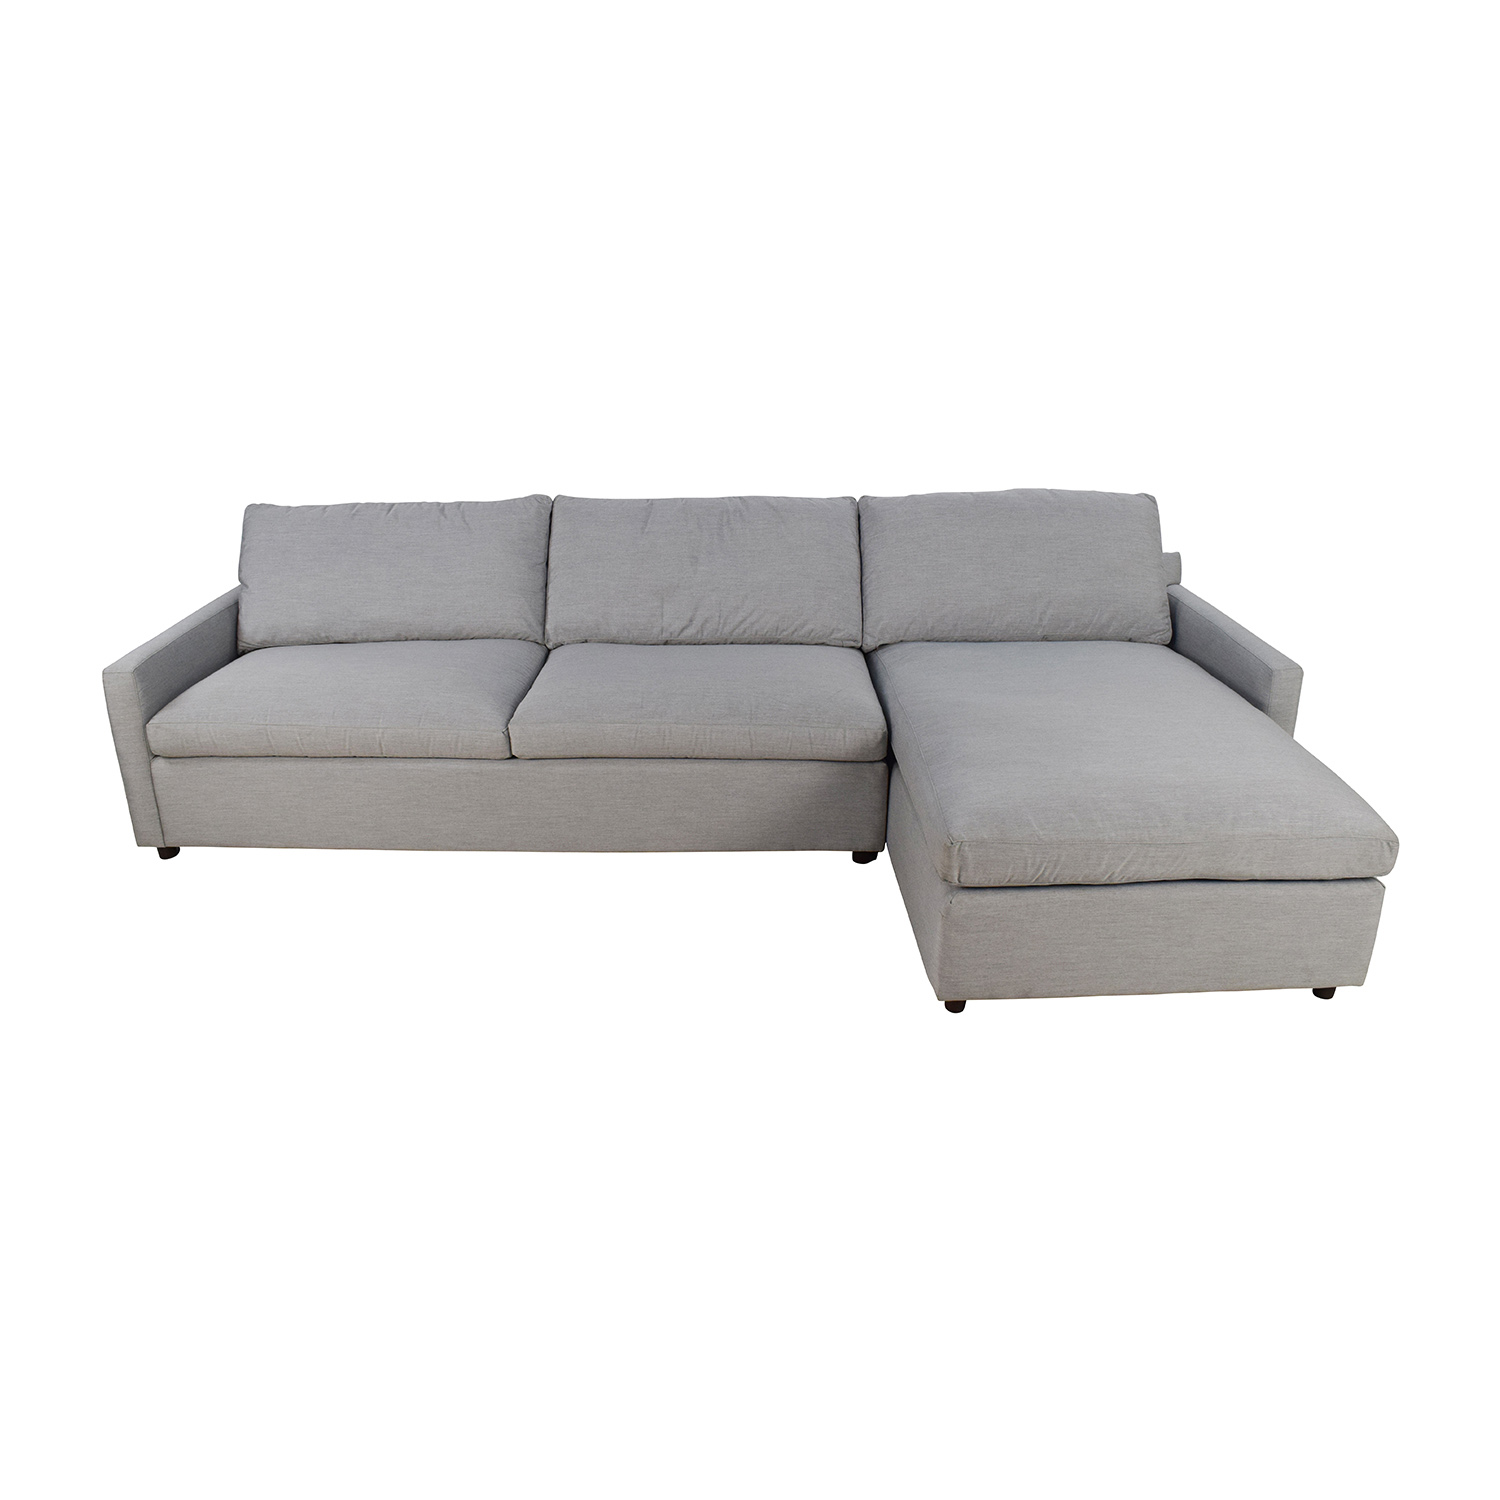 ABC Carpet & Home Cobble Hill Lucali Sectional sale